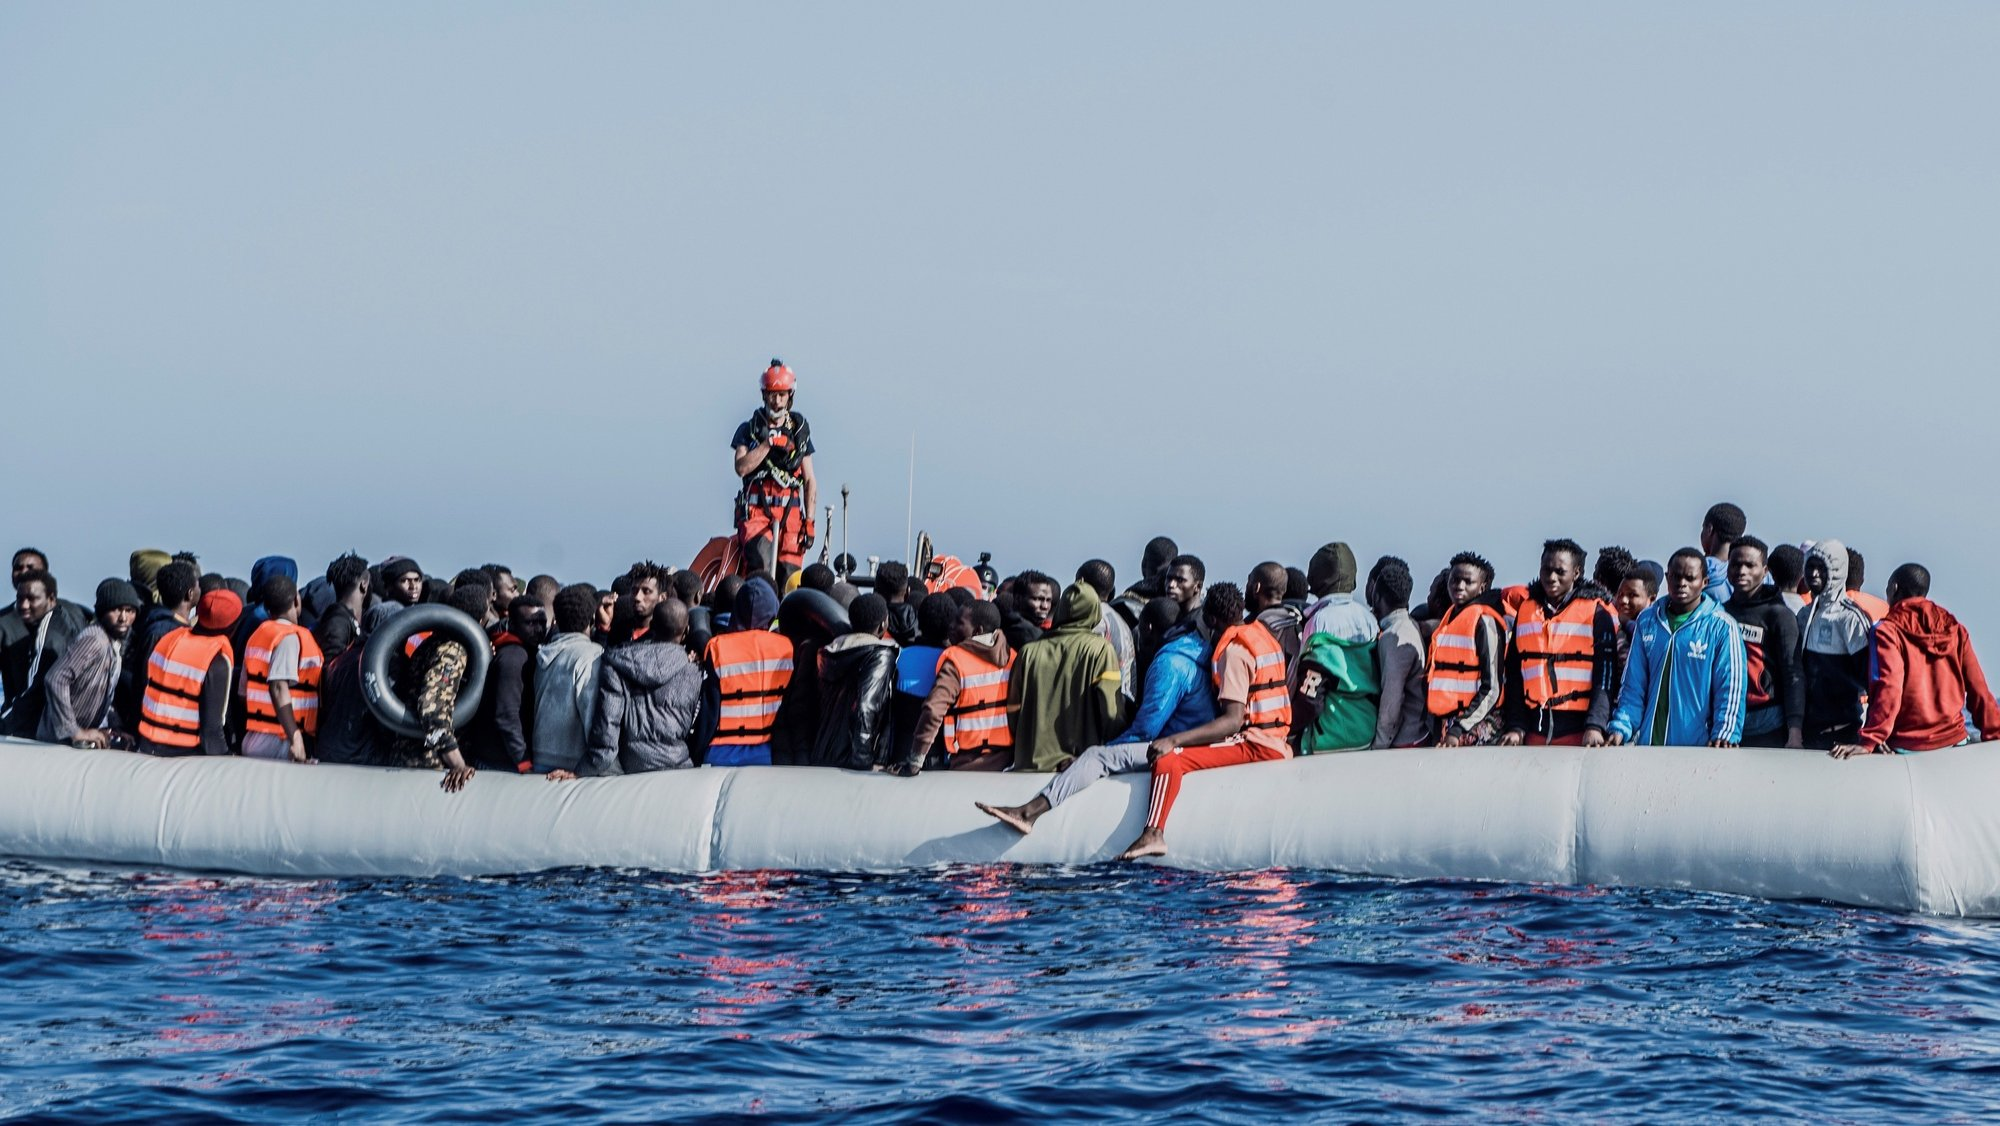 epa09163856 A handout photo made available by SOS Mediterranee show dozens of migrants on board a rubber boat floating in Mediterranean waters off the northeastern coast of Lybia, 27 April 2021. The migrants, including a newborn, 114 minors and seven women, were rescued by the European humanitarian group SOS Mediterranee a rescue charity's ship Ocean Viking.  EPA/Flavio Gasperini / SOS MEDITERRANE / HANDOUT  MANDATORY CREDIT HANDOUT EDITORIAL USE ONLY/NO SALES